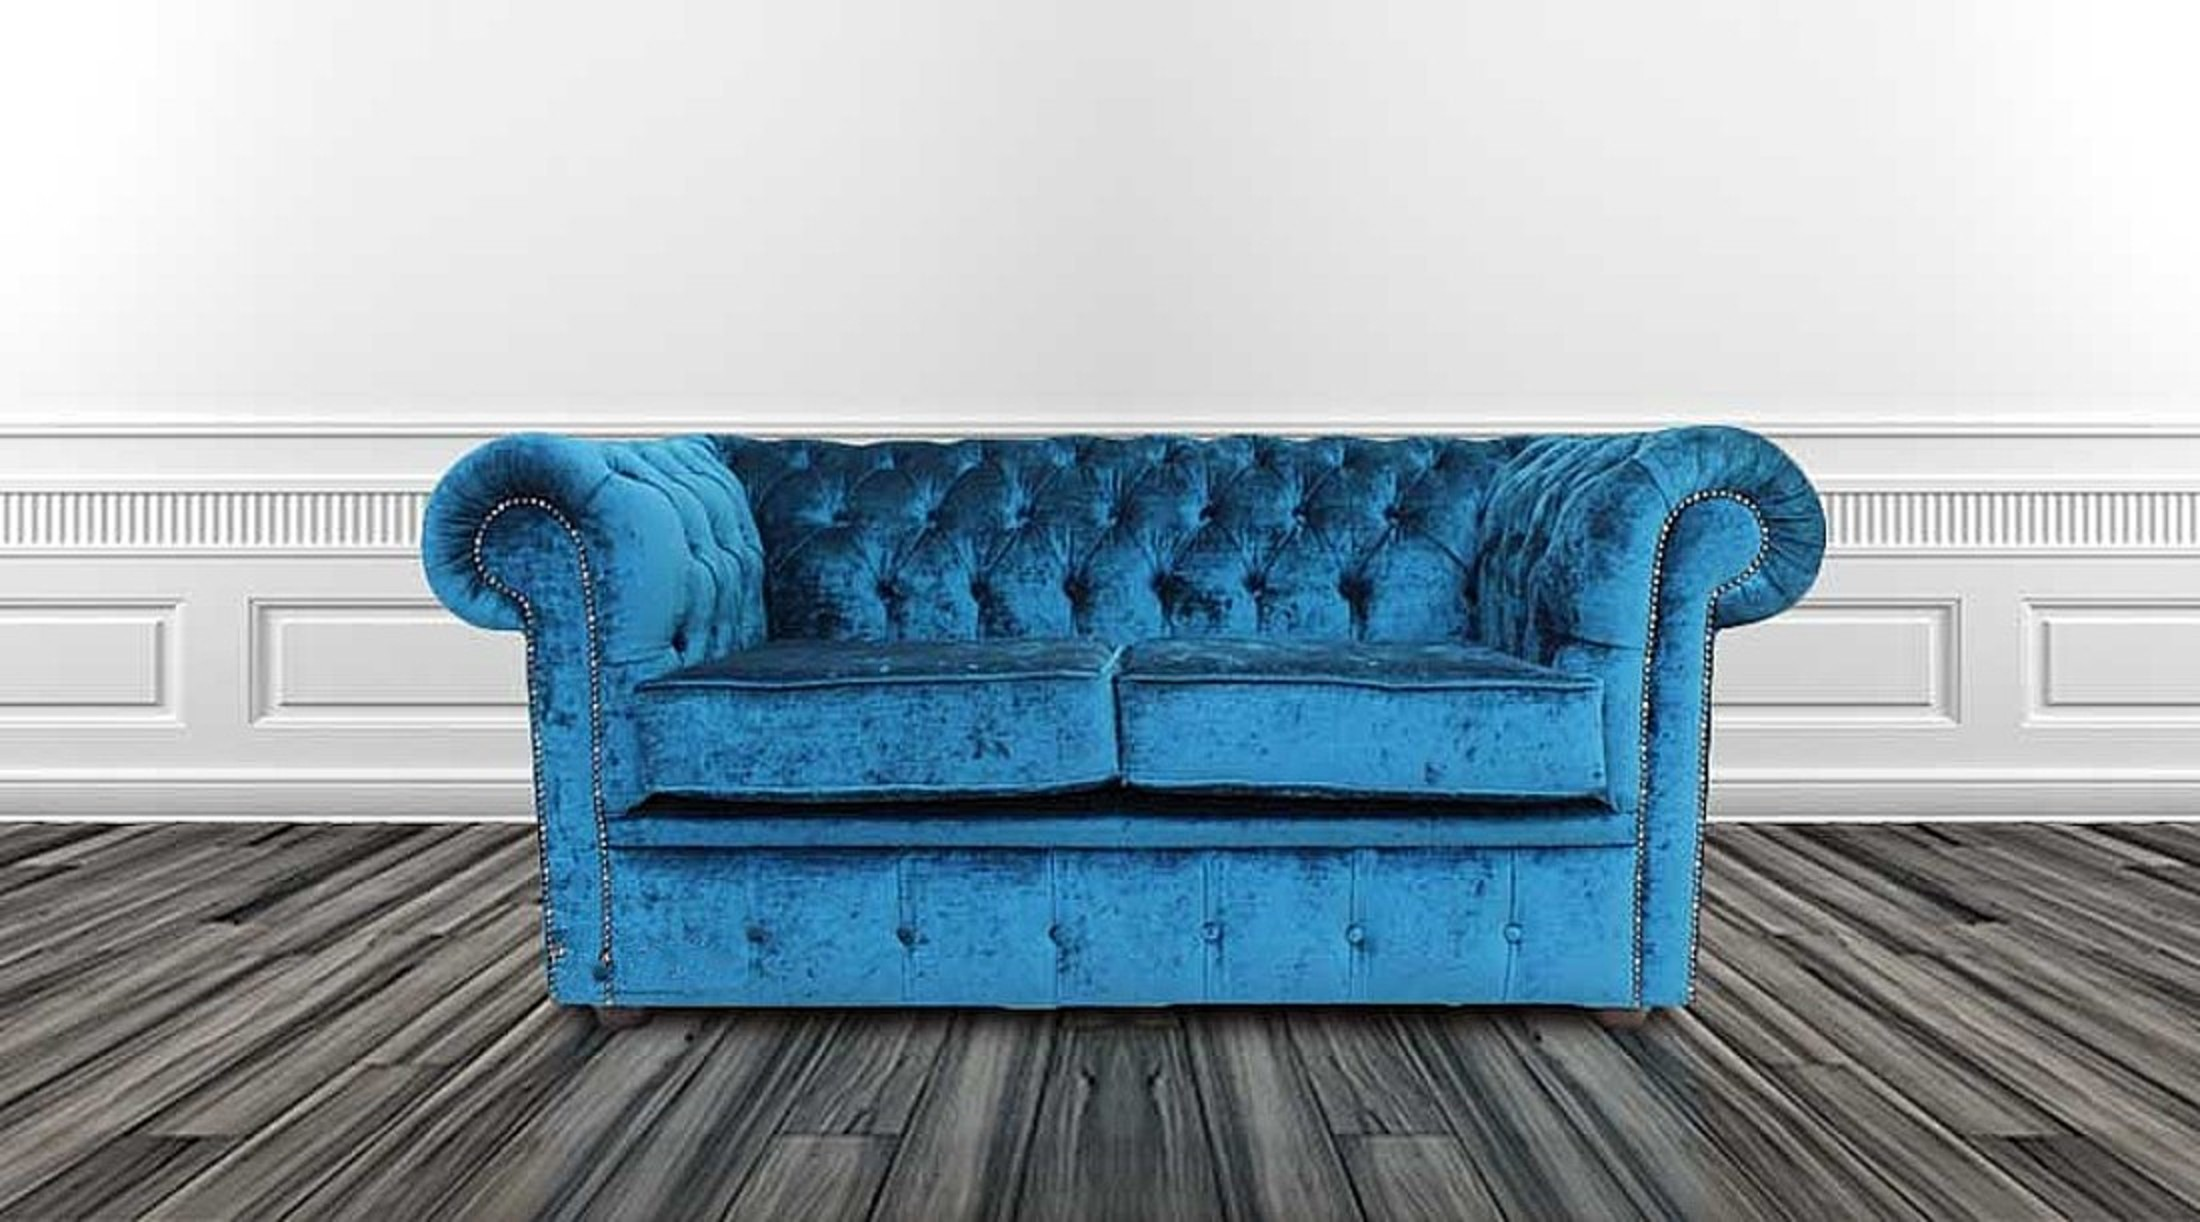 Couch petrol elegant couch petrol ideen iwaniccy big with couch